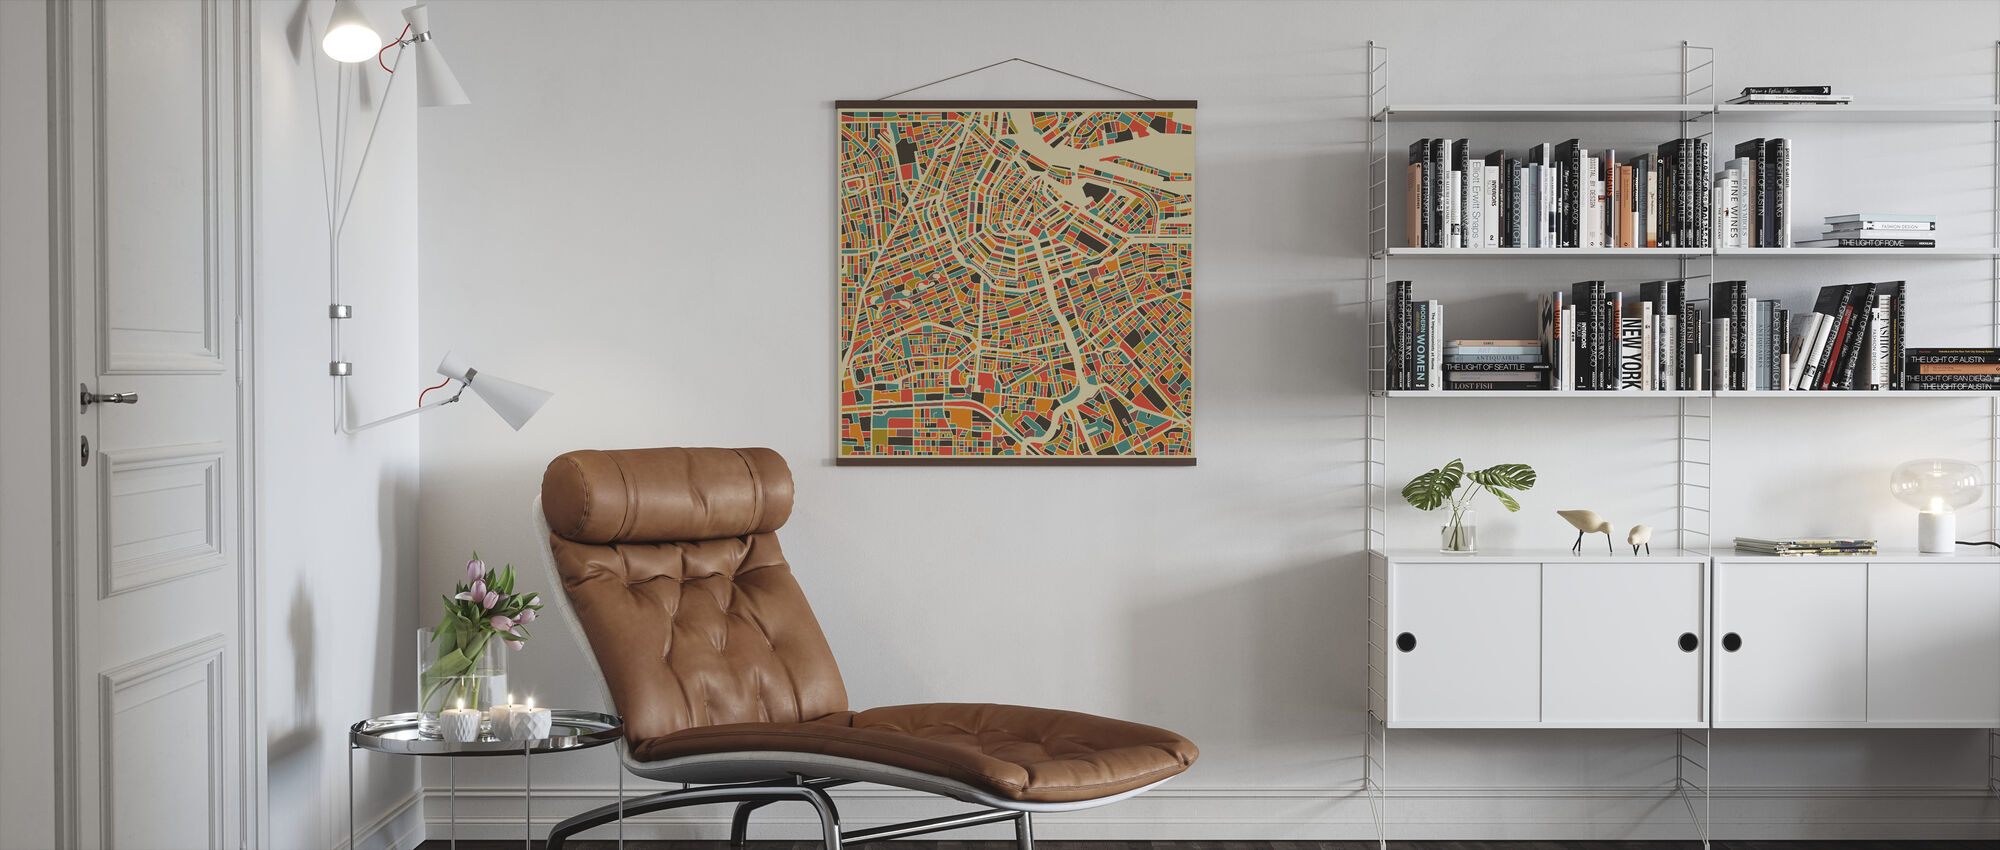 Multicolor Map - Amsterdam - Poster - Living Room